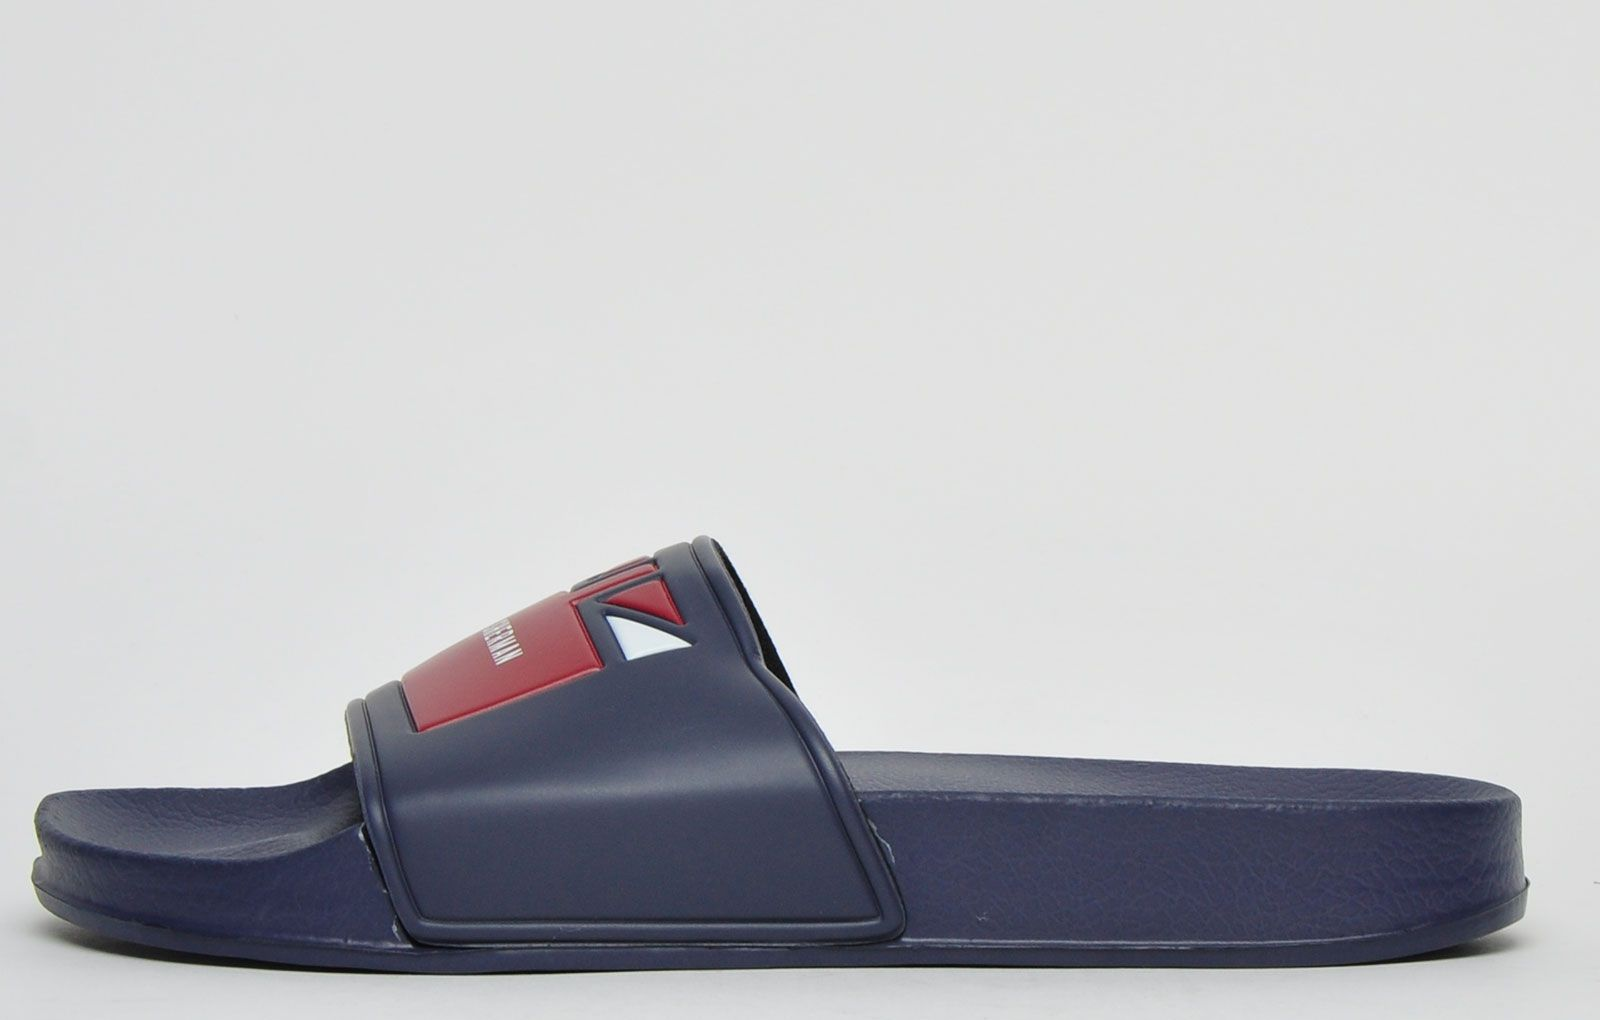 Ben Sherman Jet Slide Mens